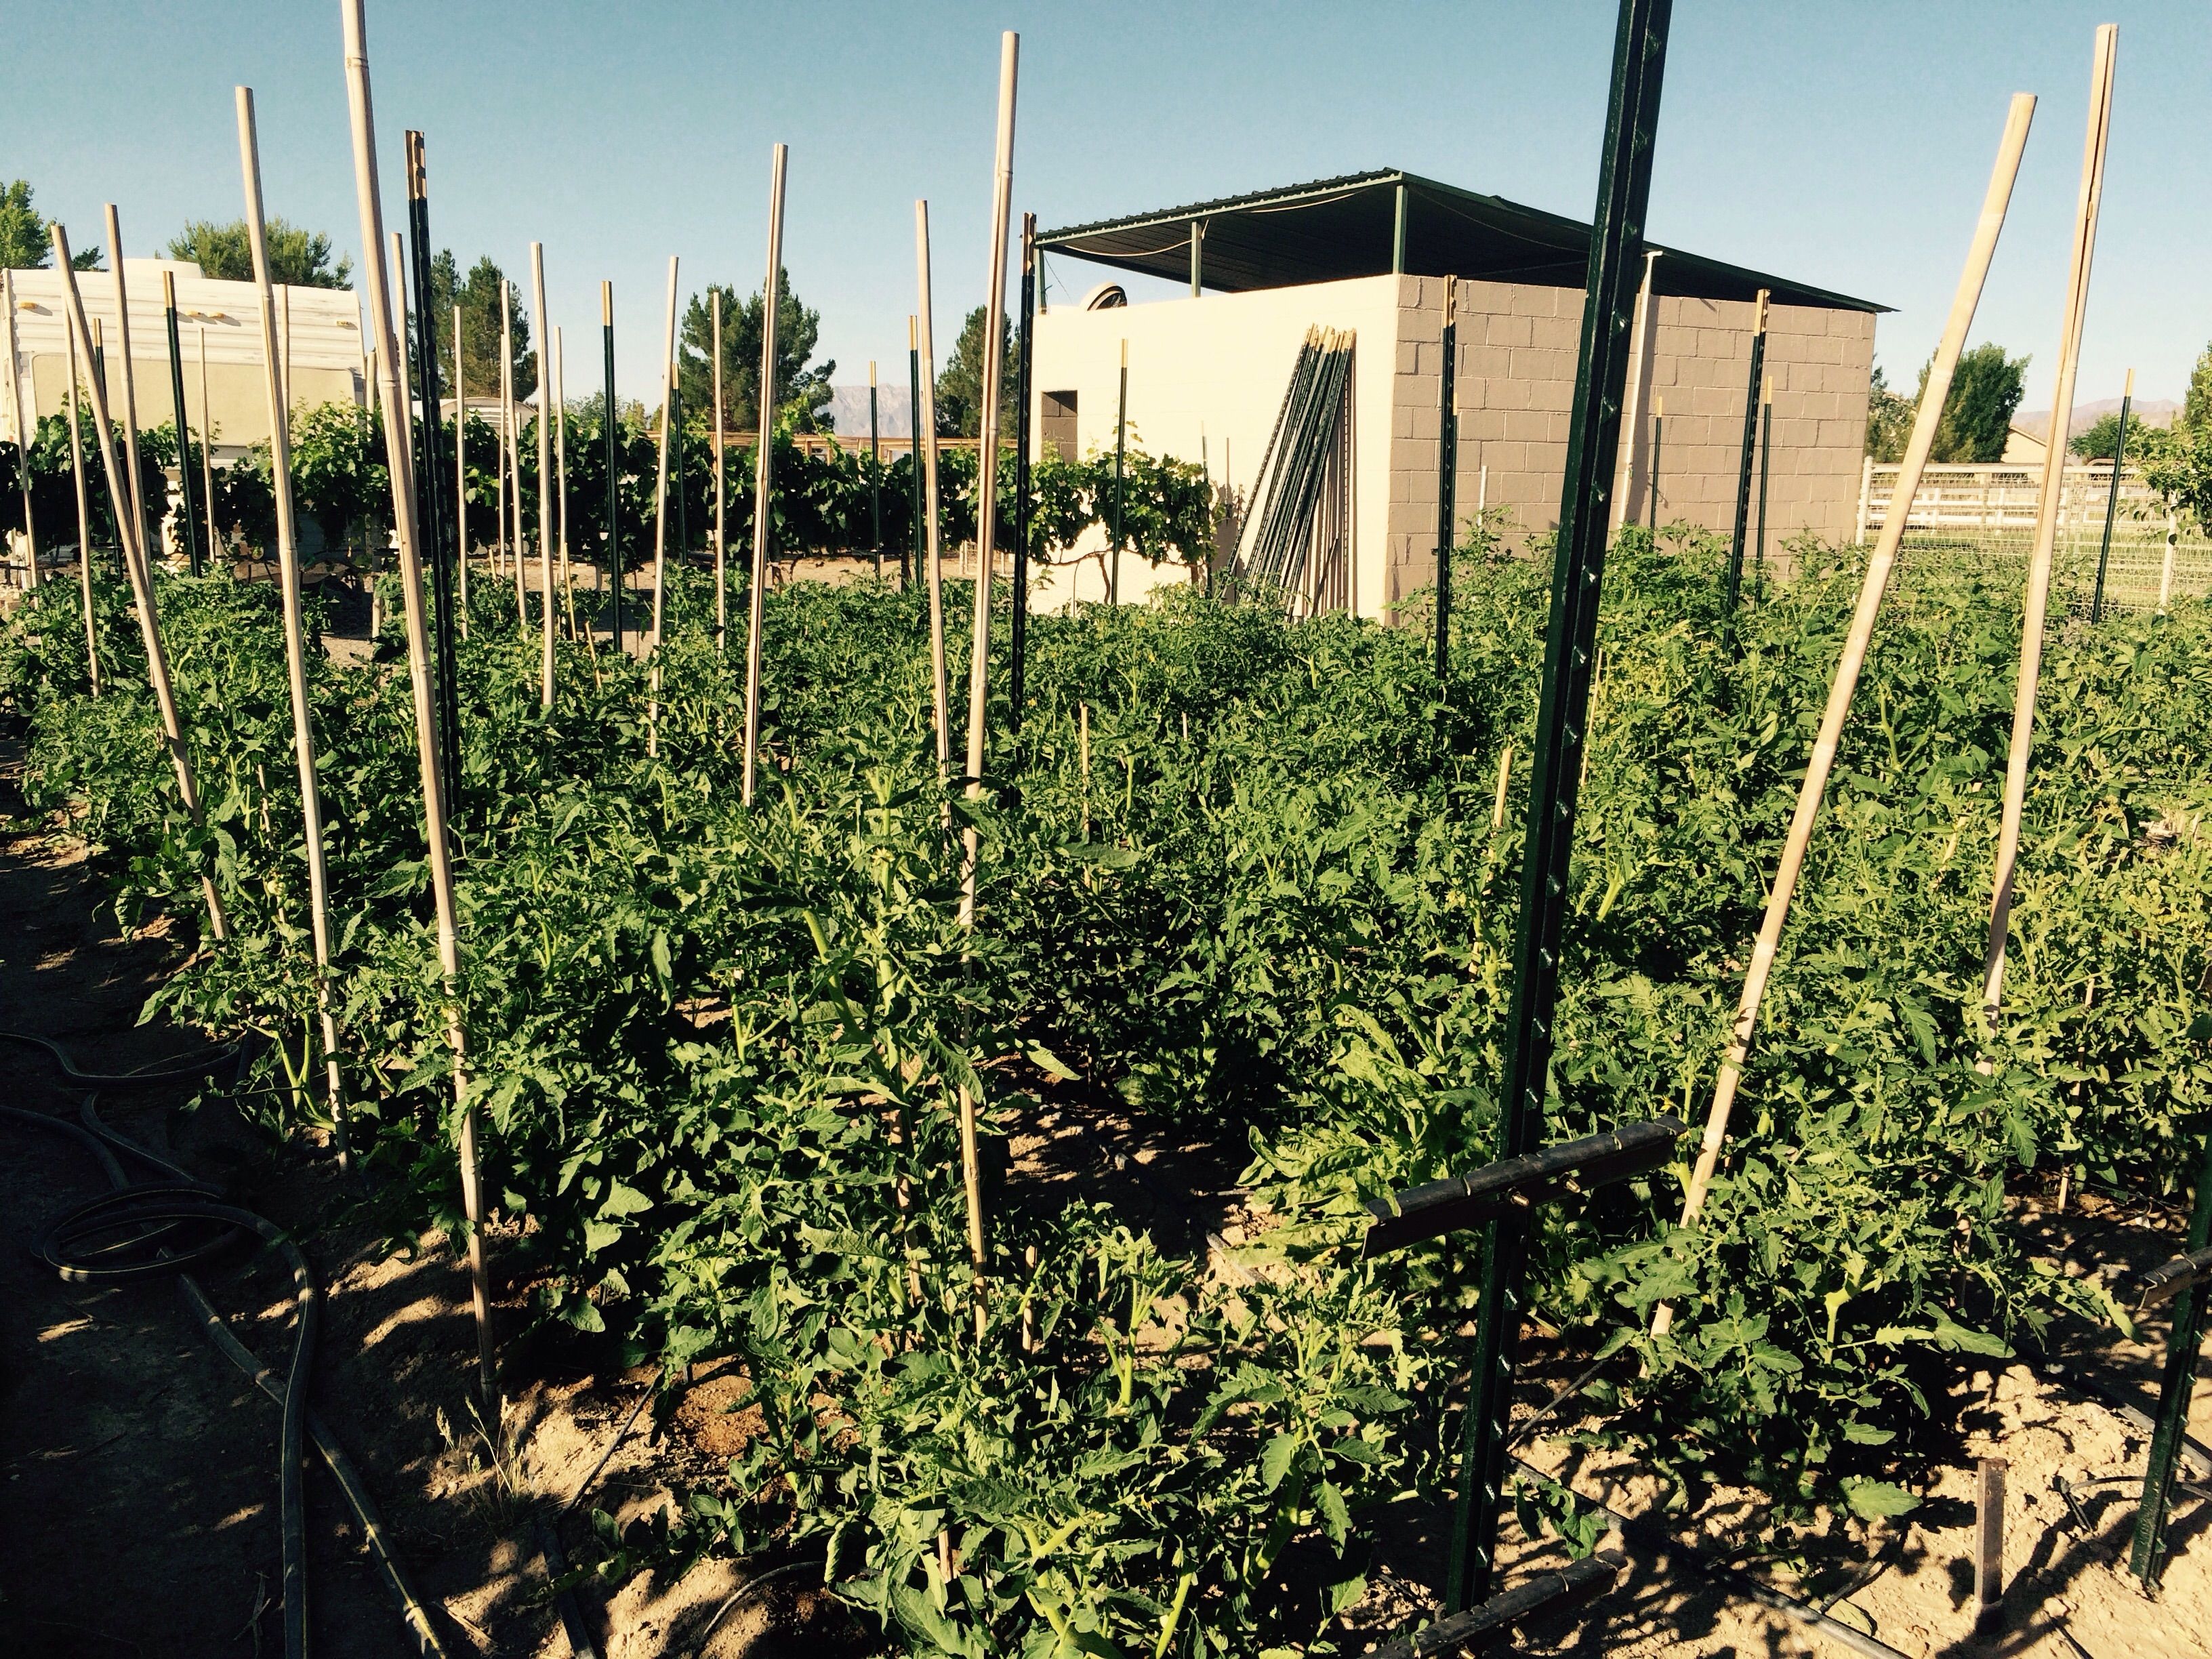 Our orators are the best plants we have had and there is 100's of tomatoes on the vines can't wait for ripe heirloom tomatoes it will be fall before the potatoes will be ready